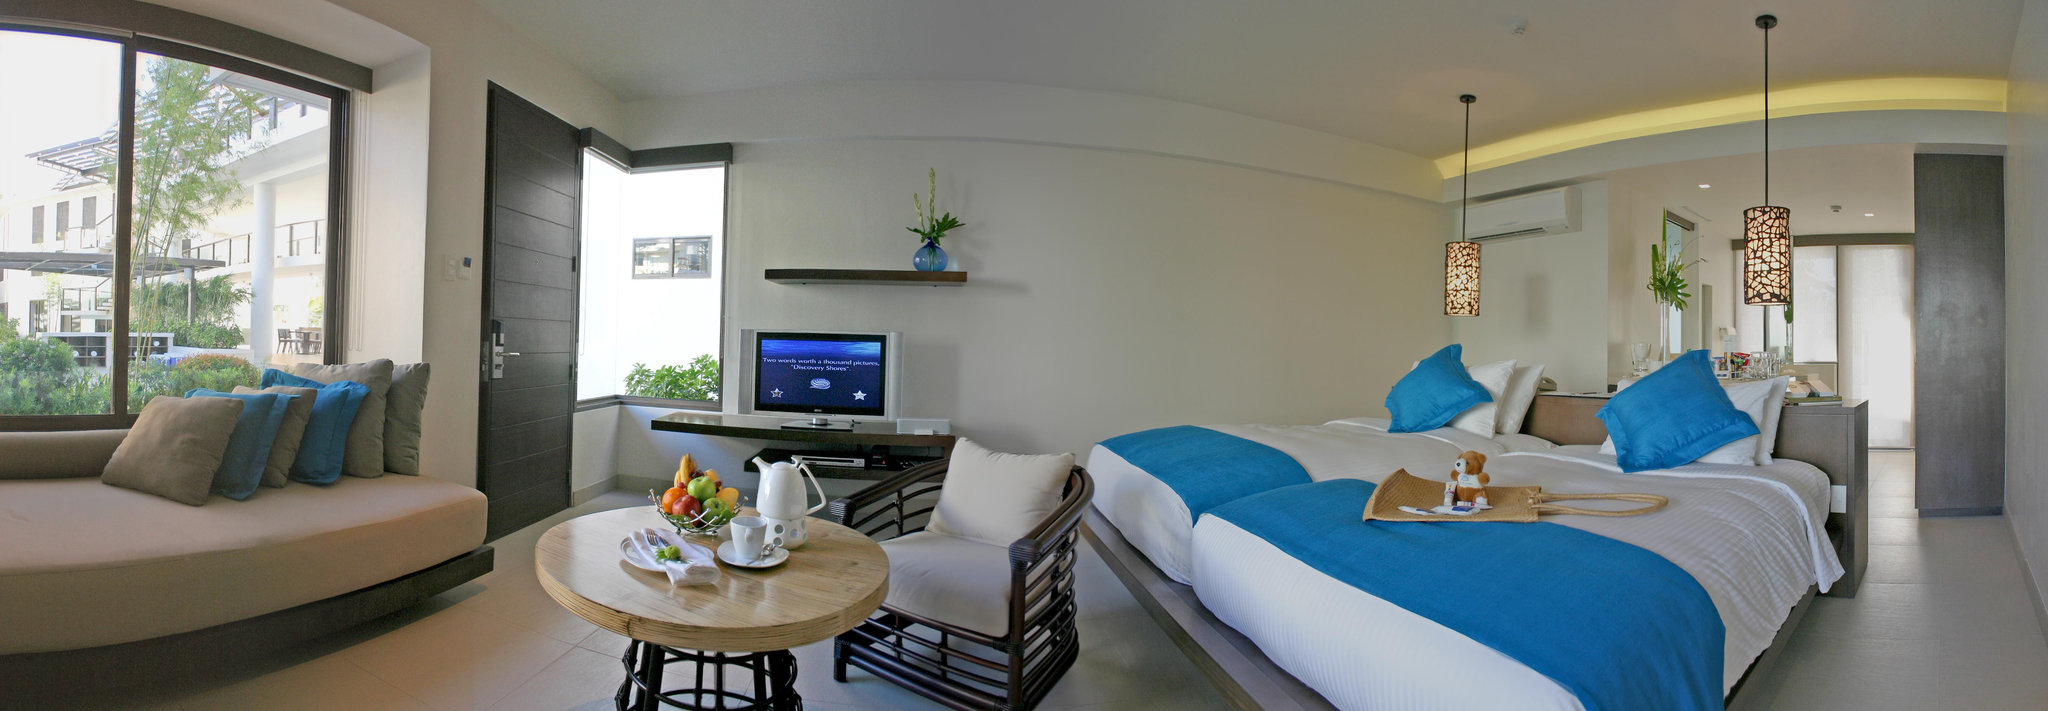 Luxurious Retreat in Boracay Island: Discovery Shores